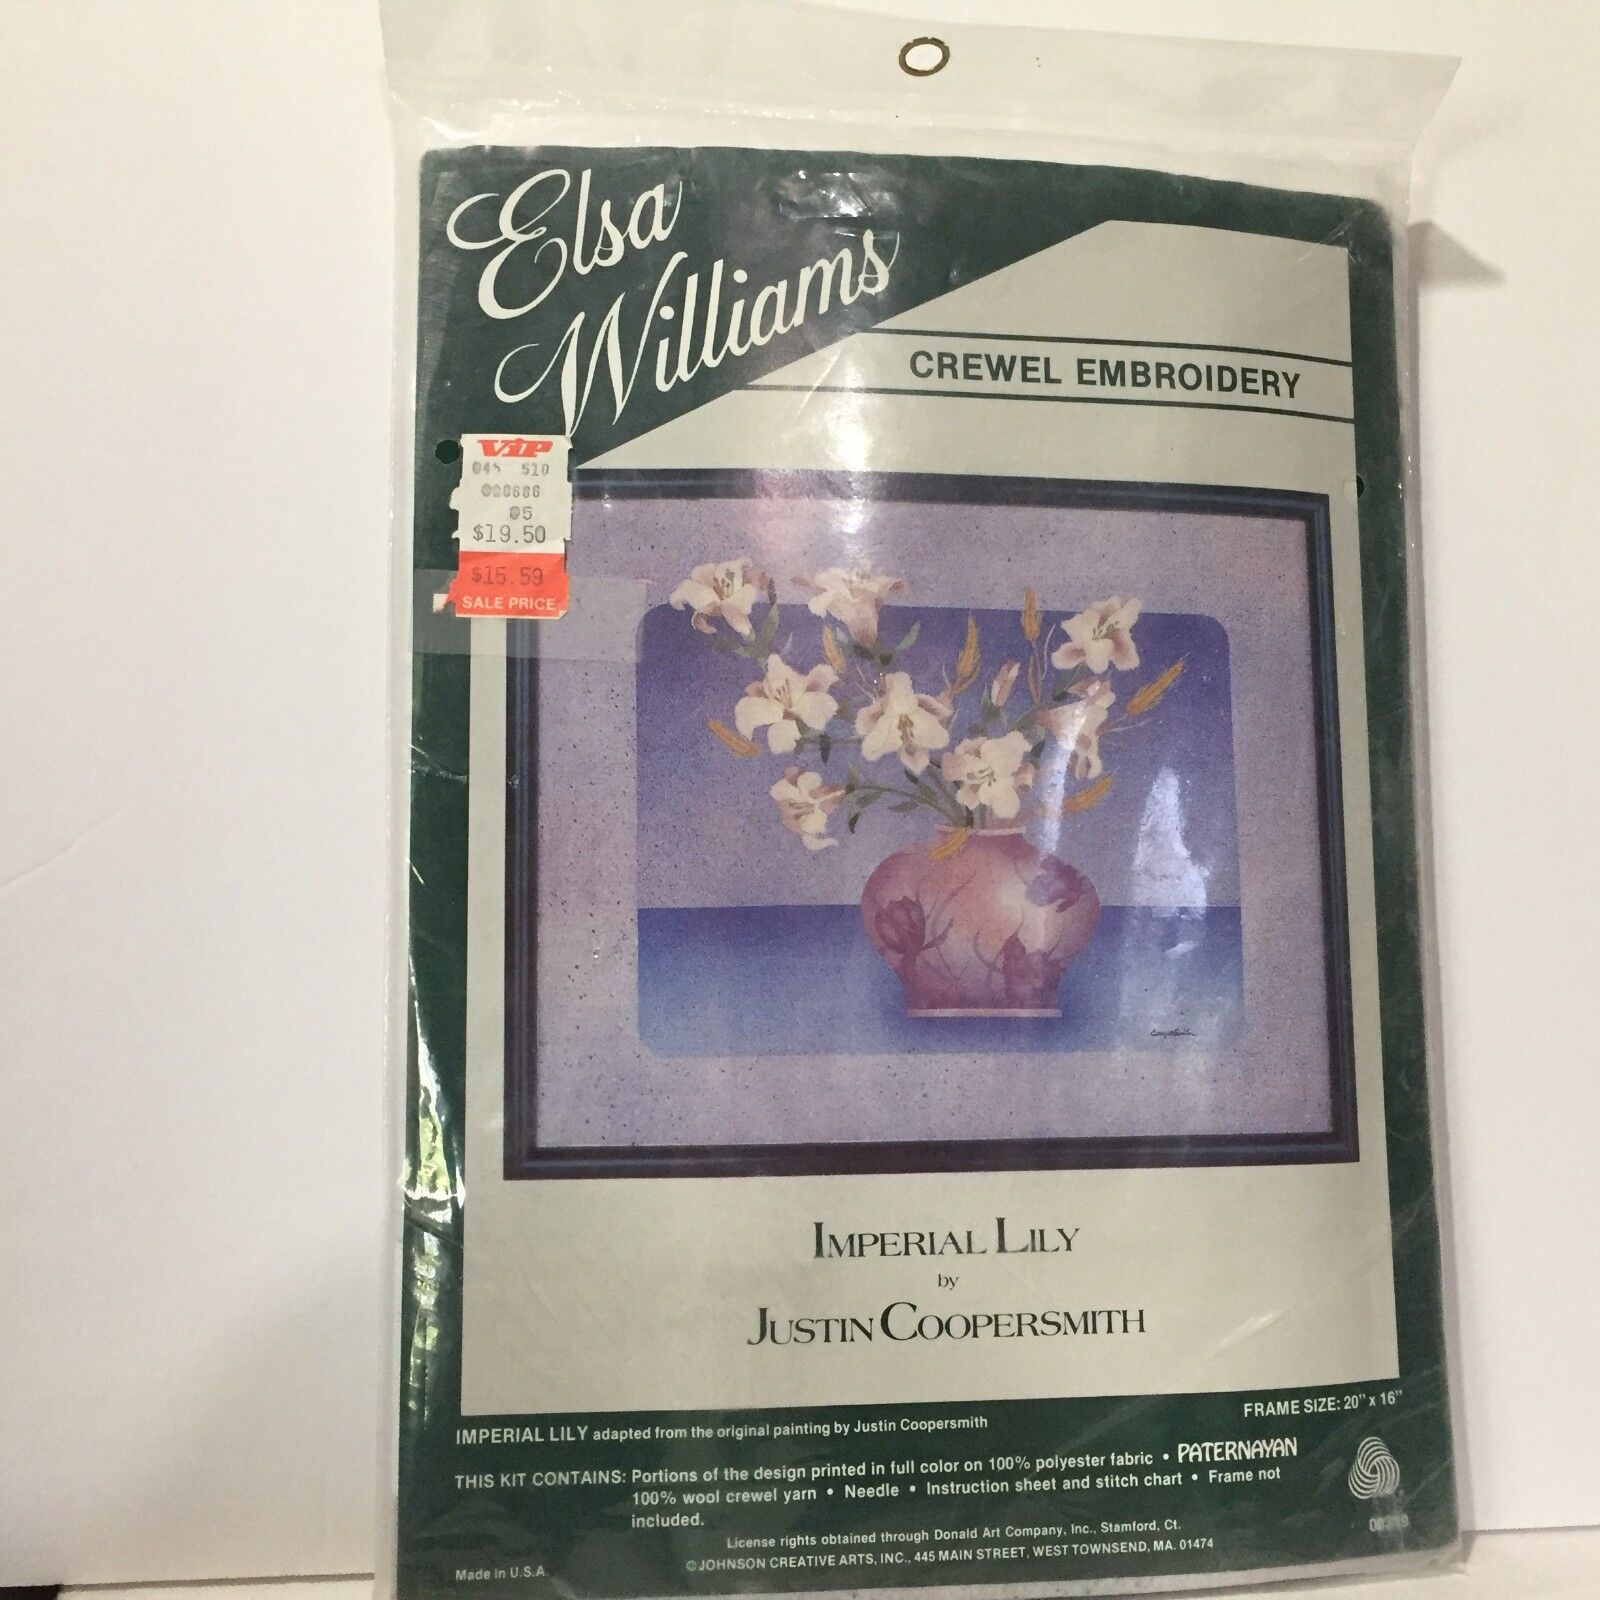 New Elsa Williams Crewel Embroidery Kit Imperial Lily 00319 20x16